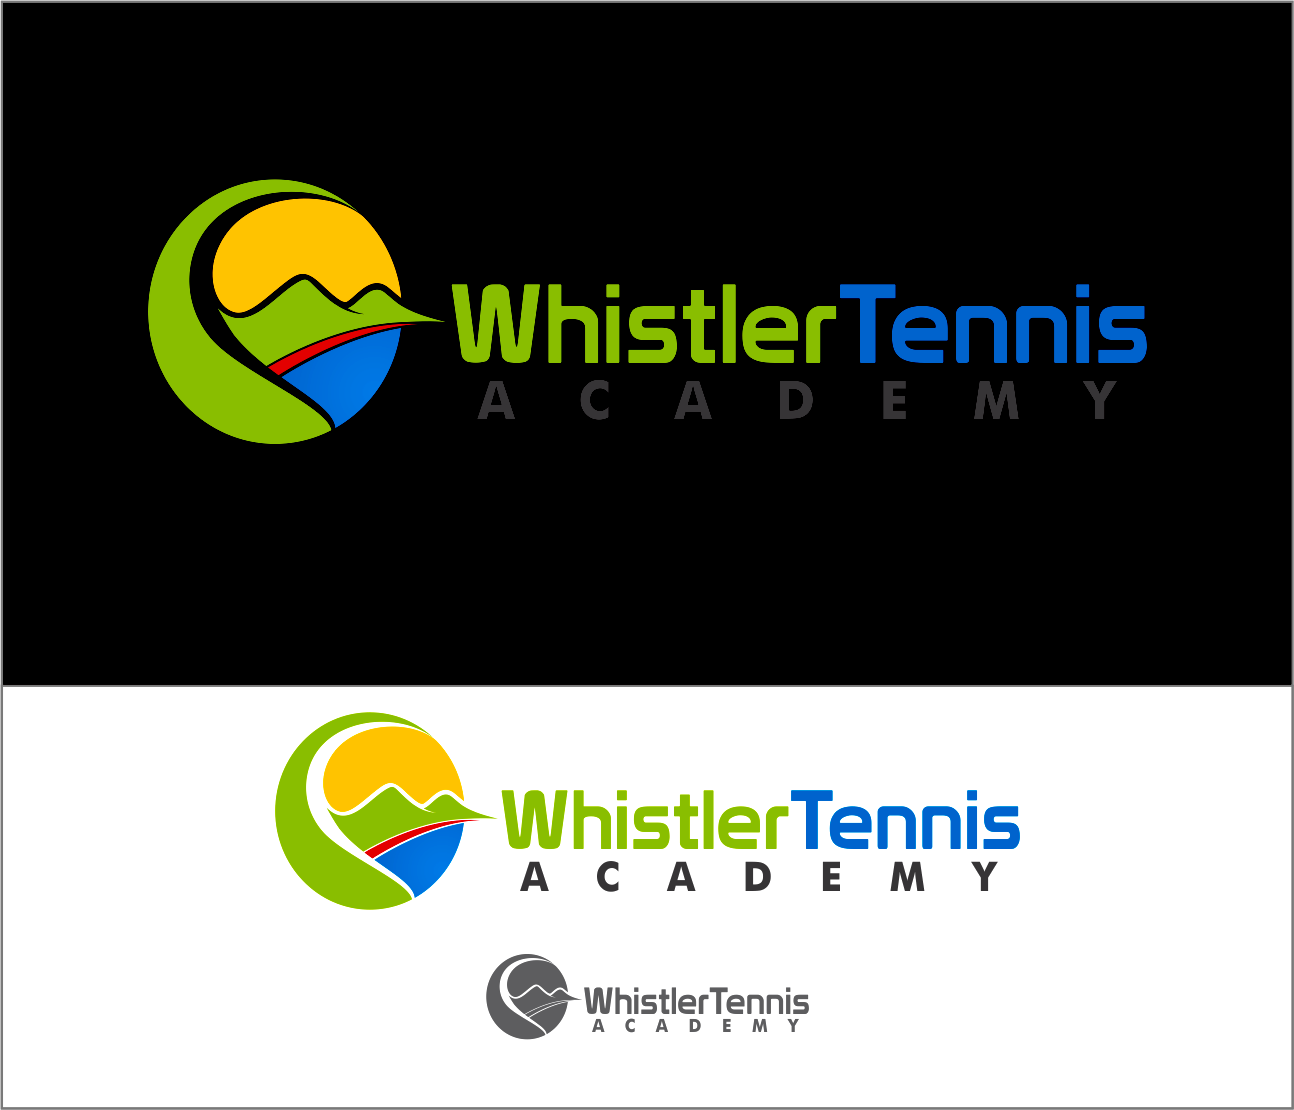 Logo Design by Armada Jamaluddin - Entry No. 208 in the Logo Design Contest Imaginative Logo Design for Whistler Tennis Academy.